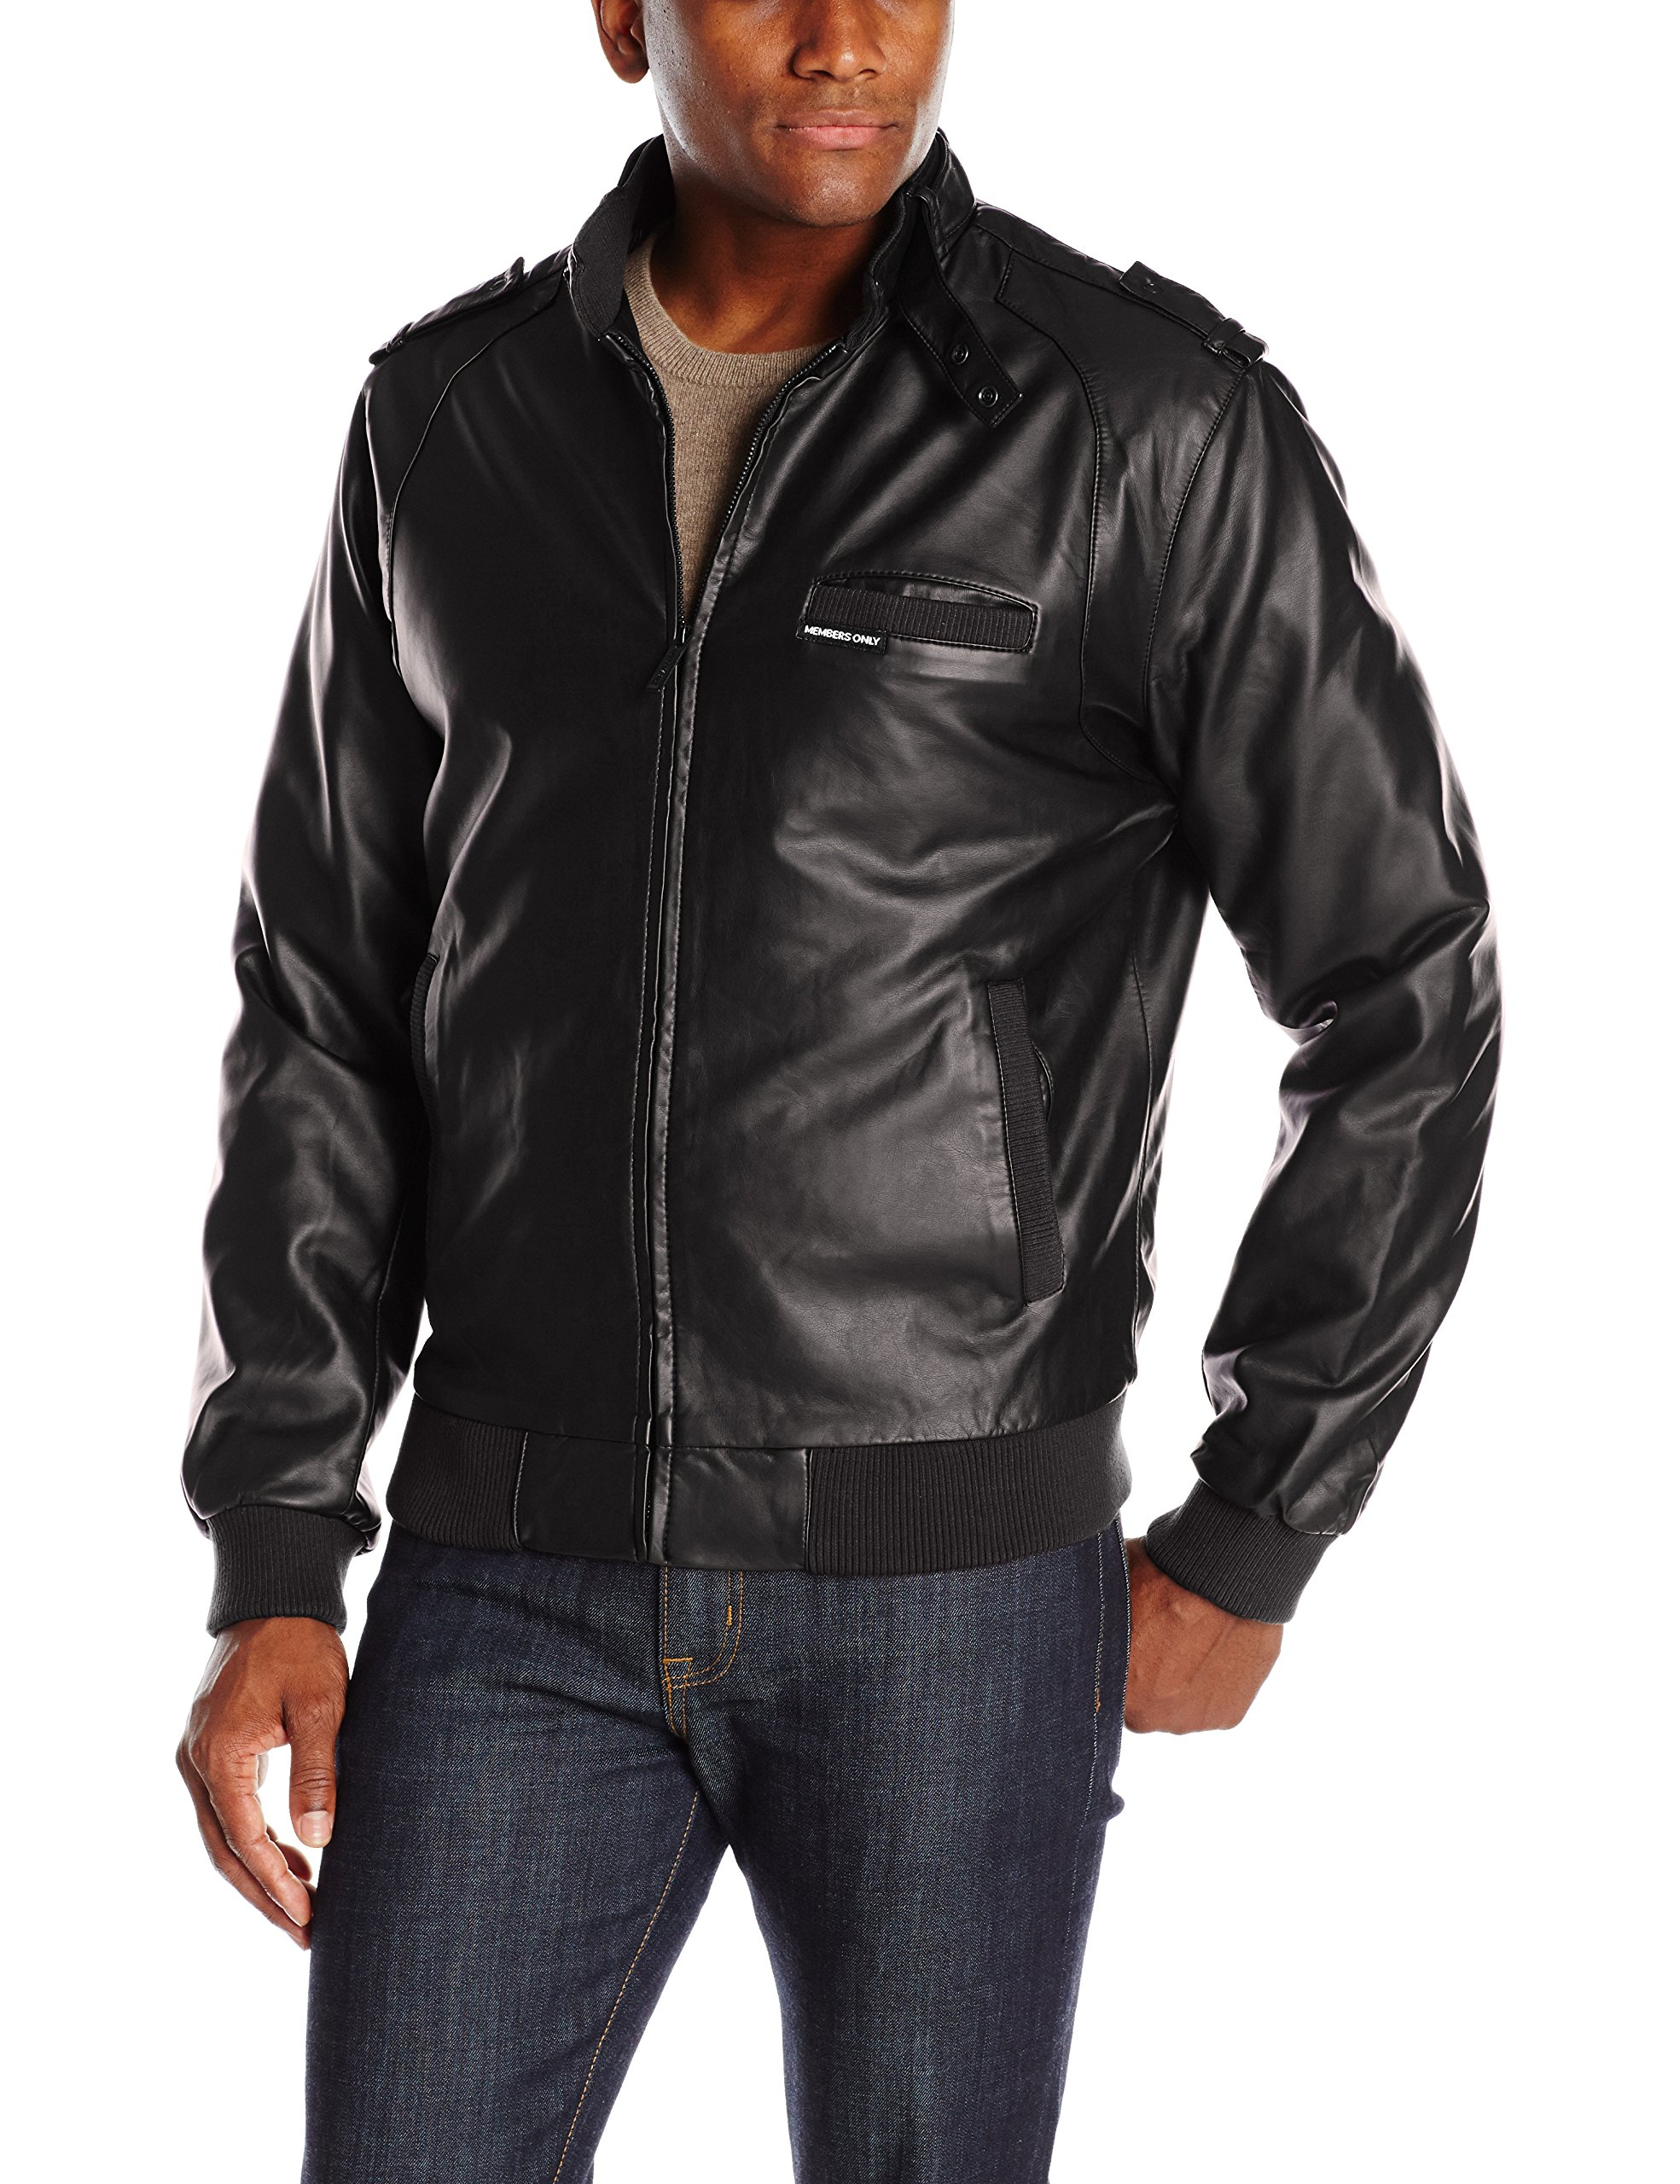 Members Only Men's Original Leather Iconic Racer Jacket, Black, S by Members Only